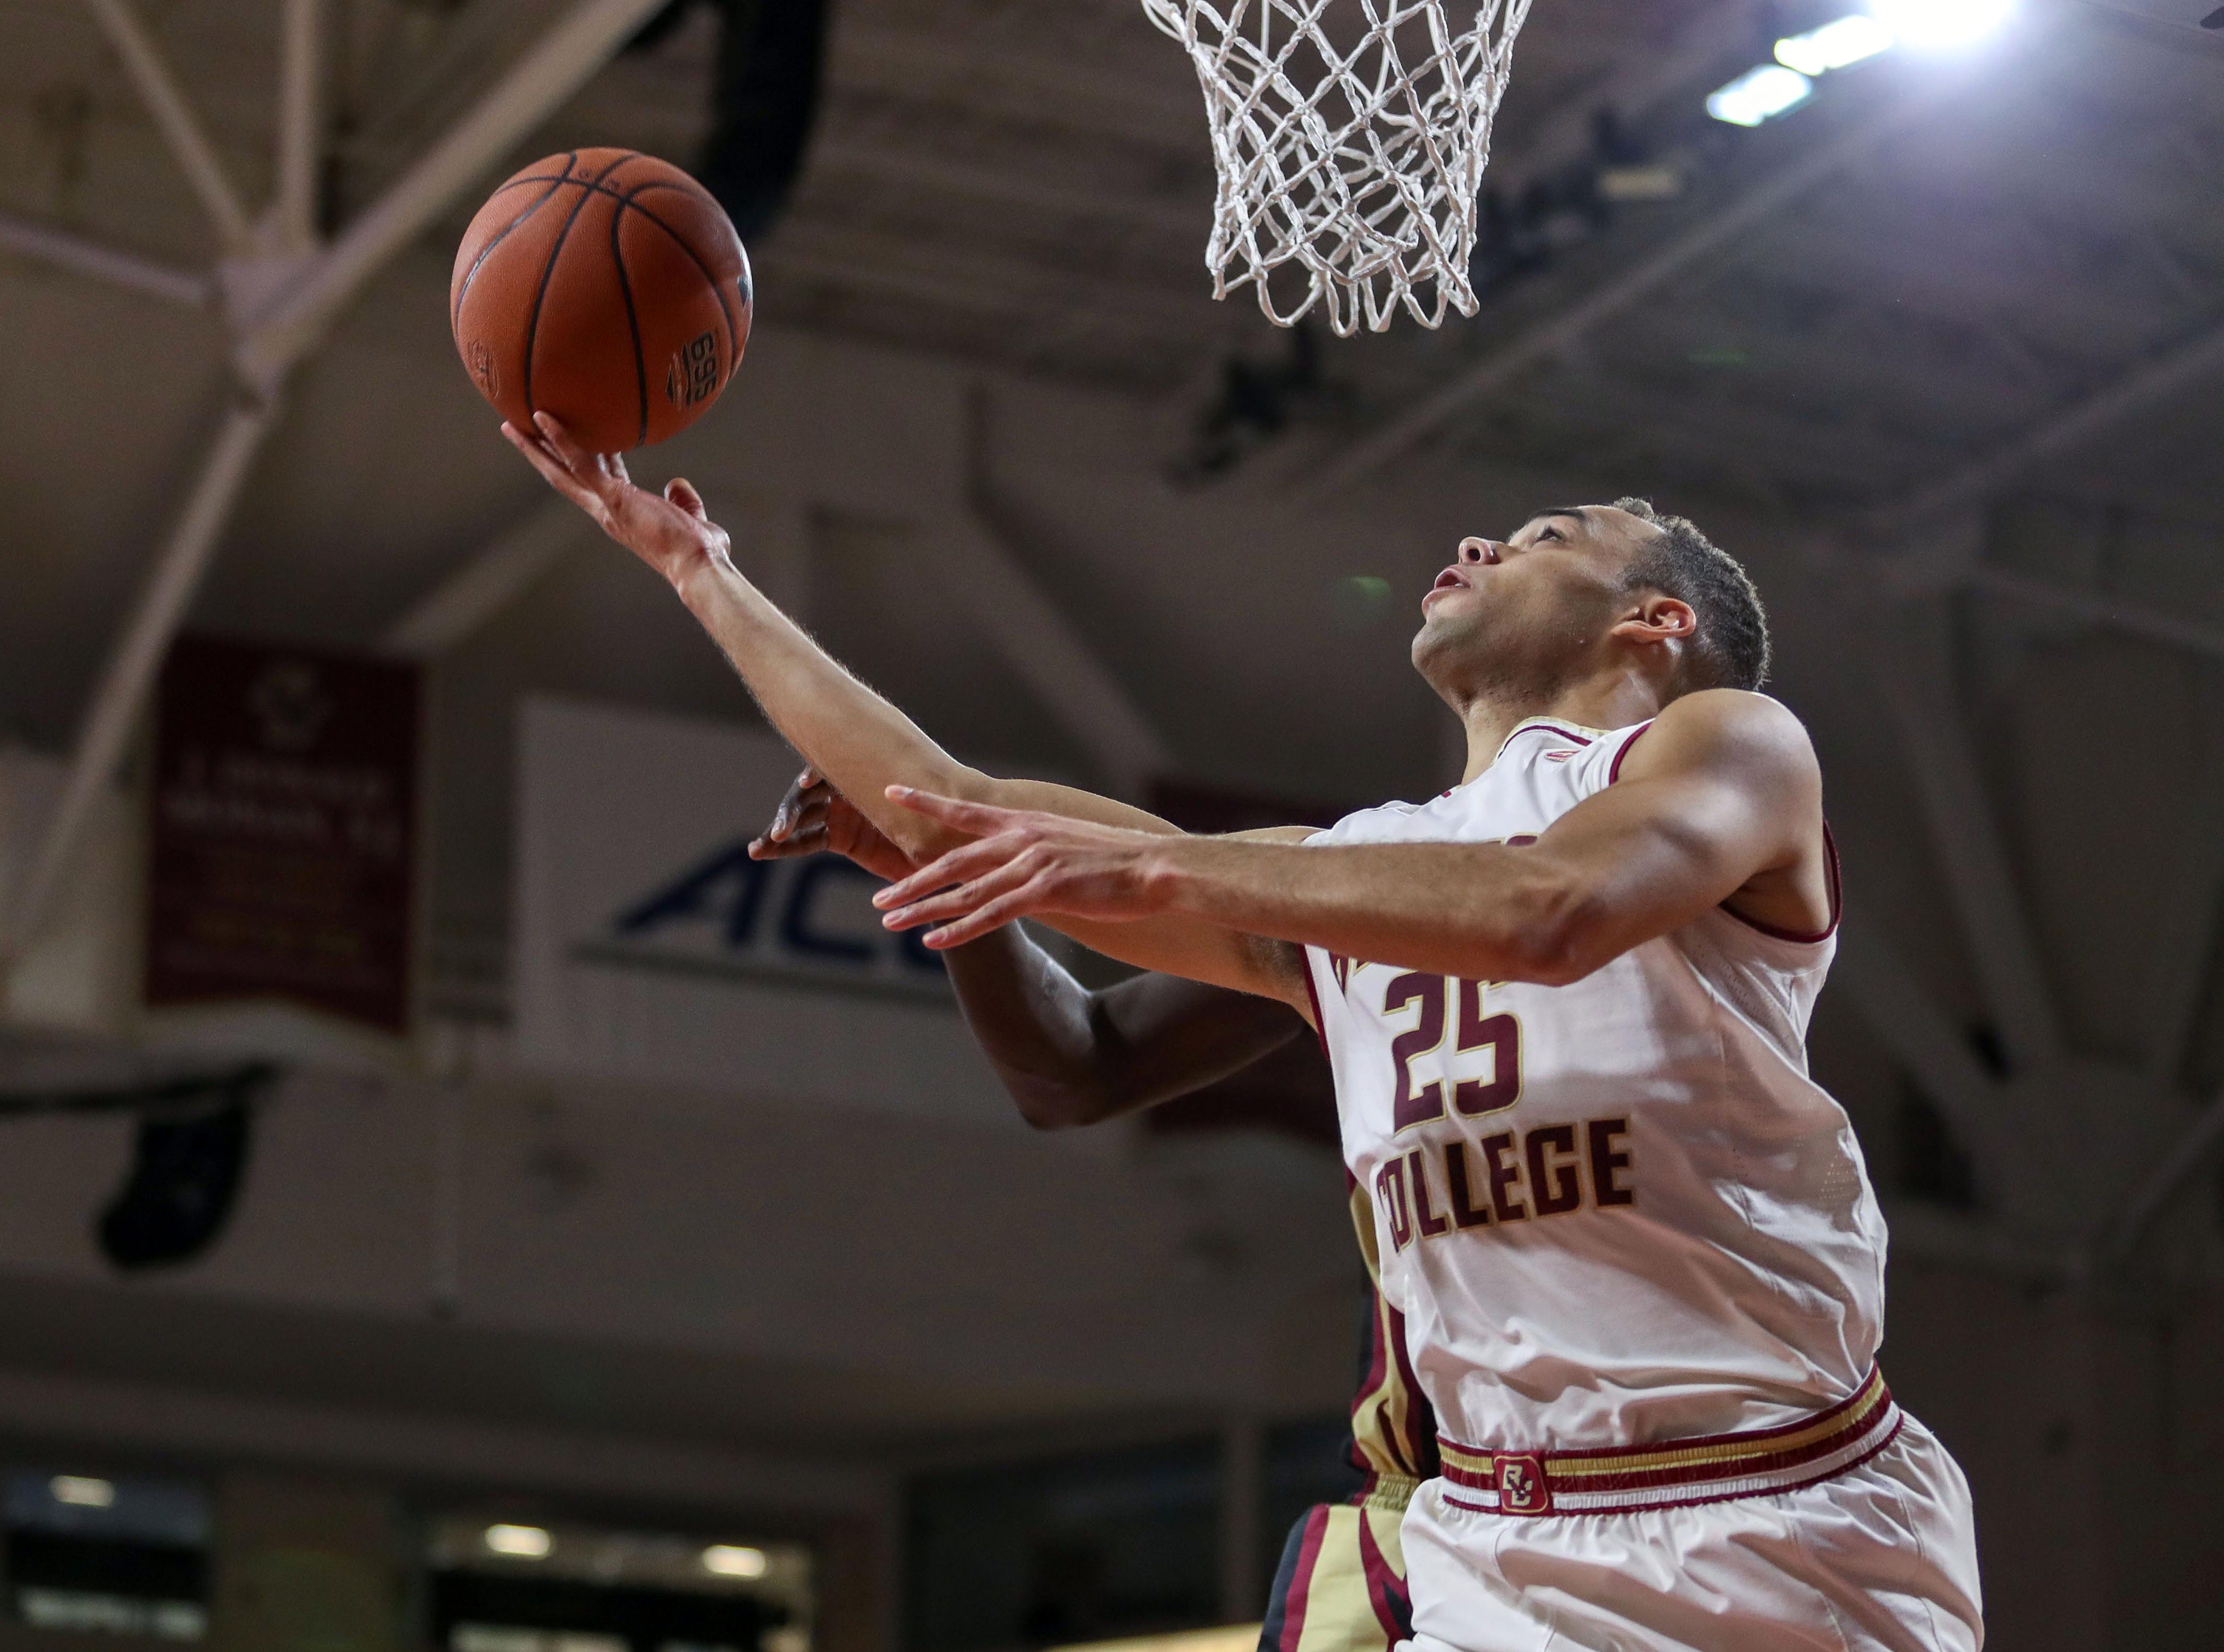 Jan 20, 2019; Chestnut Hill, MA, USA; Boston College Eagles guard Jordan Chatman (25) shoots against Florida State Seminoles during the first half at Conte Forum. Mandatory Credit: Paul Rutherford-USA TODAY Sports